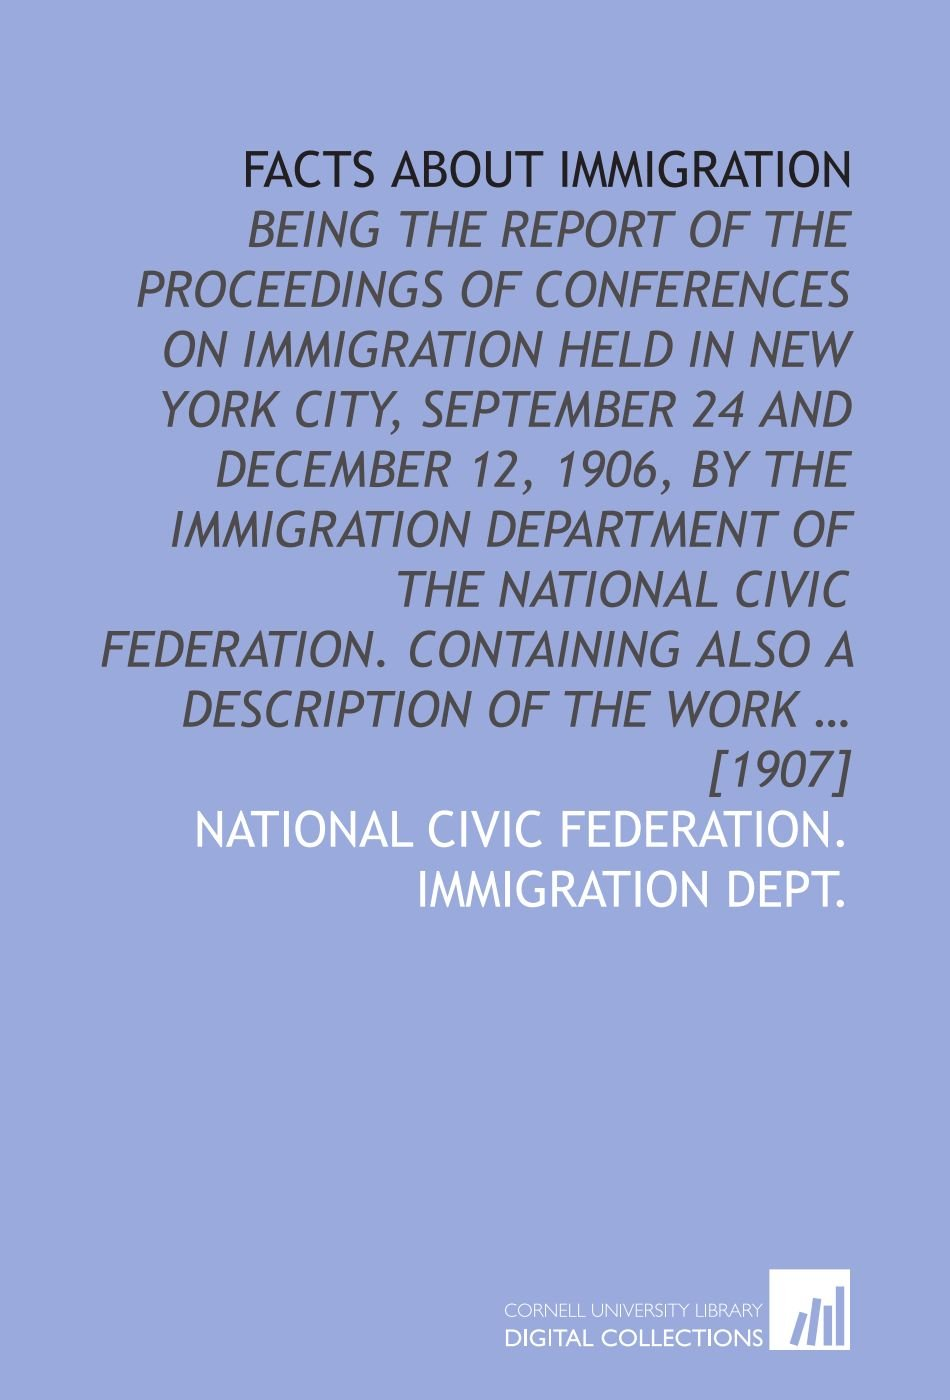 Download Facts about immigration: Being the report of the proceedings of conferences on immigration held in New York city, September 24 and December 12, 1906, ... also a description of the work … [1907] ebook